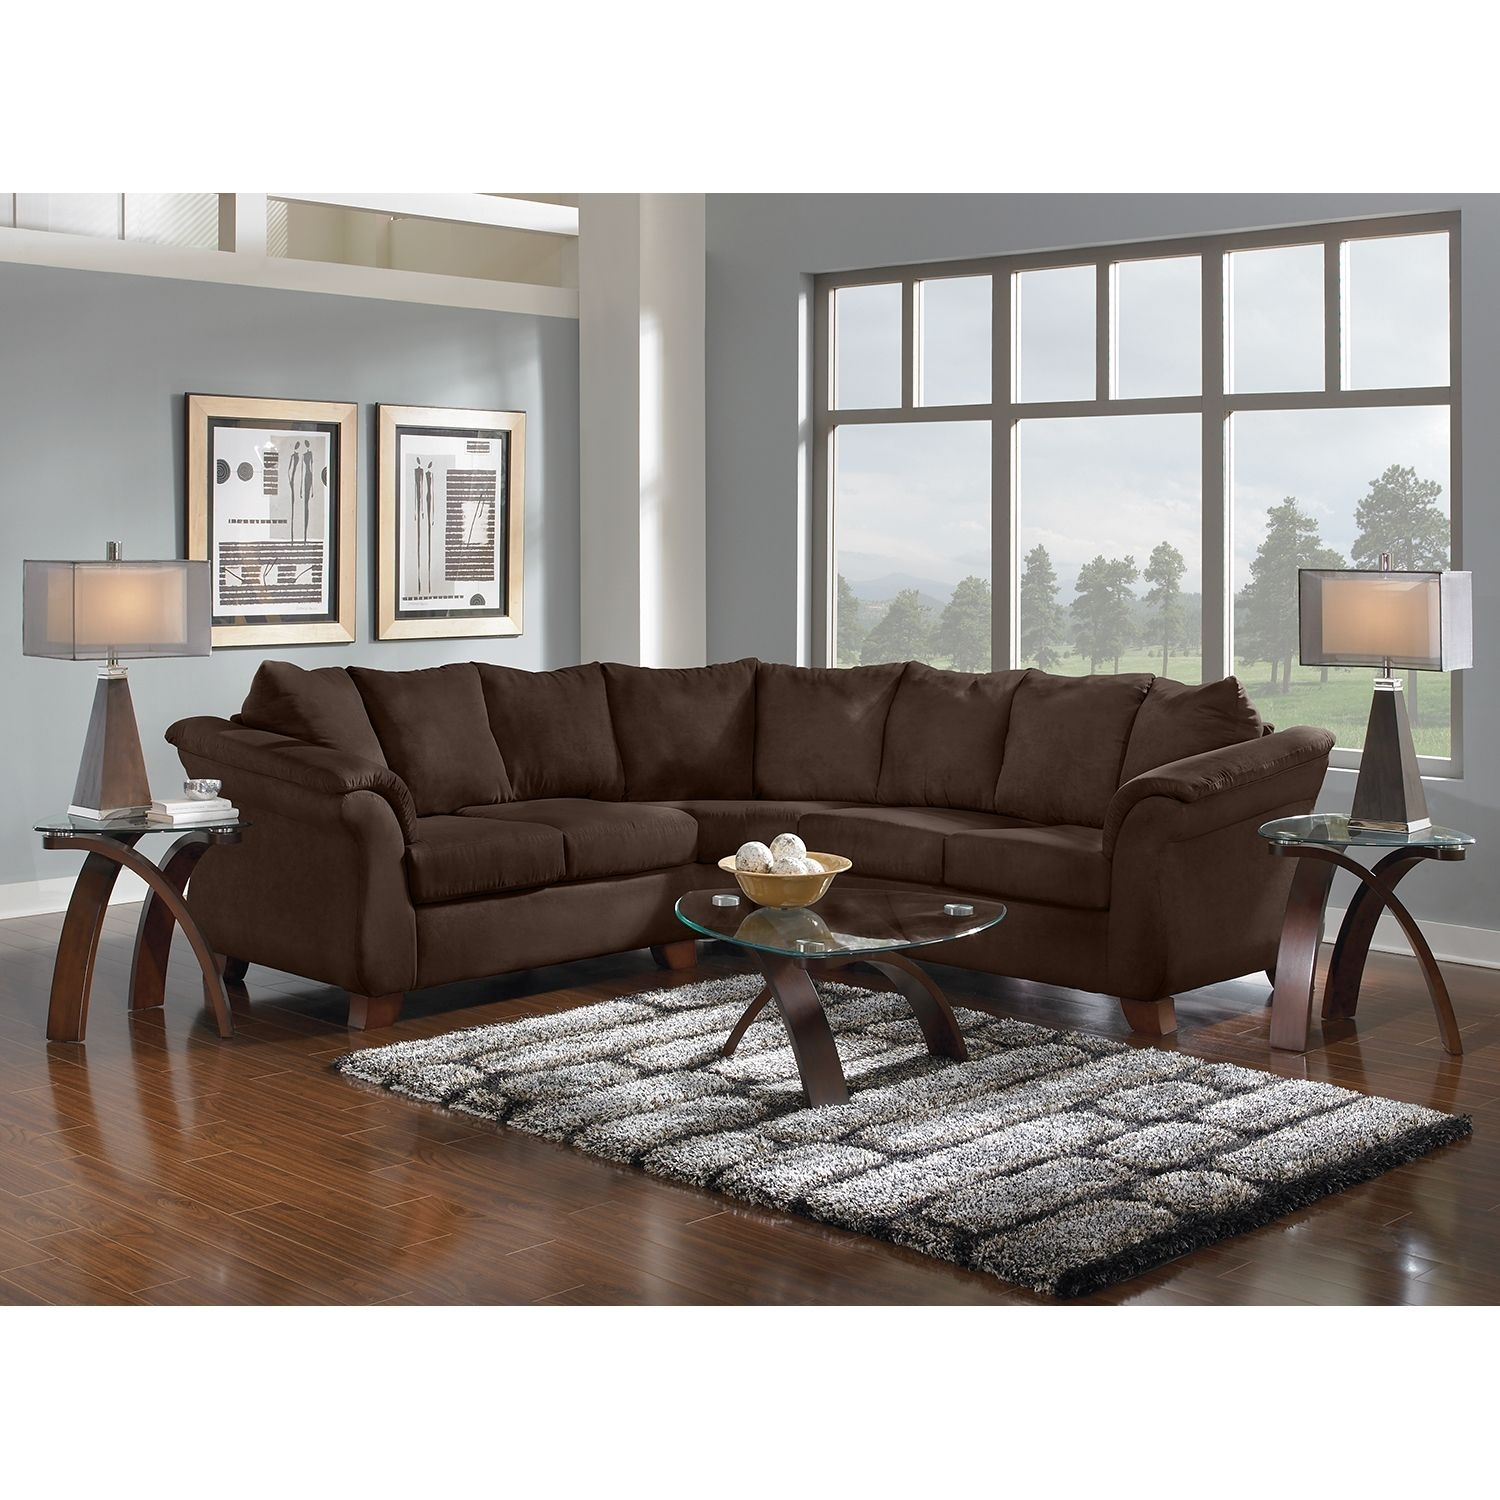 Adrian 2-Piece Sectional - Chocolate | Home Living | Pinterest inside Denali Light Grey 6 Piece Reclining Sectionals With 2 Power Headrests (Image 4 of 30)